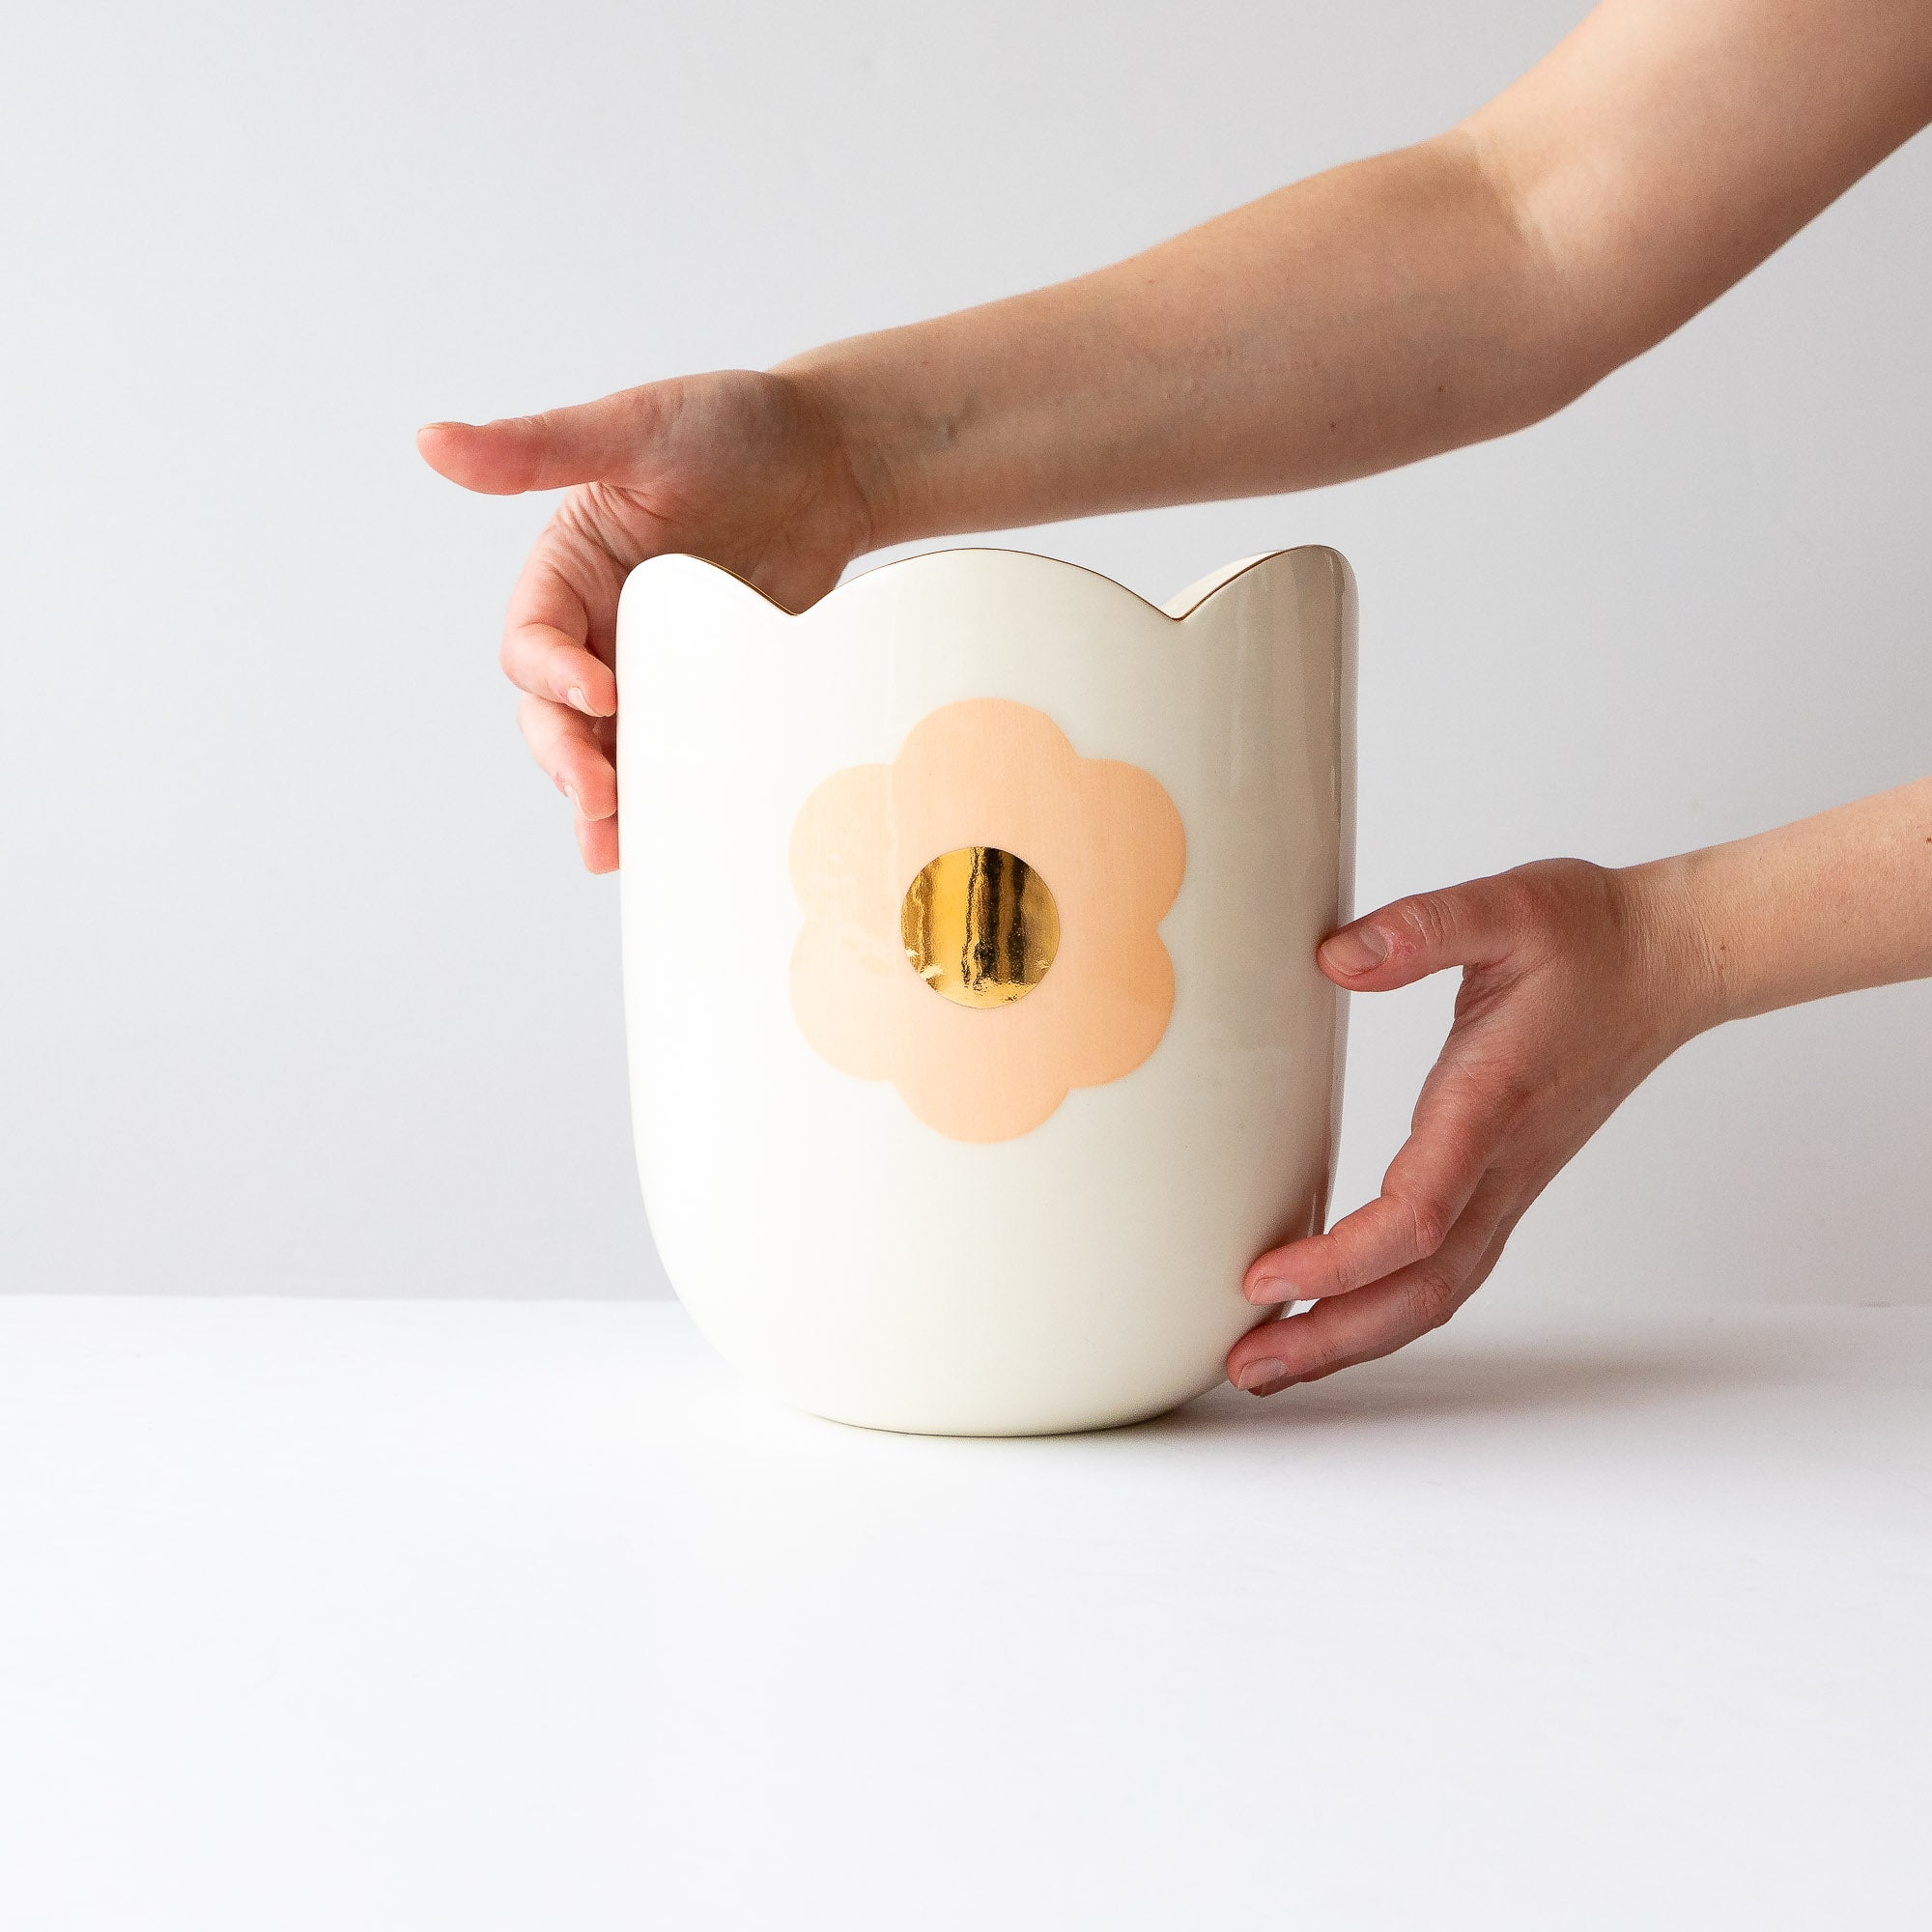 Model Holding a Handmade Porcelain & Gold Tangerine Daisy Planter / Vase - Sold by Chic & Basta